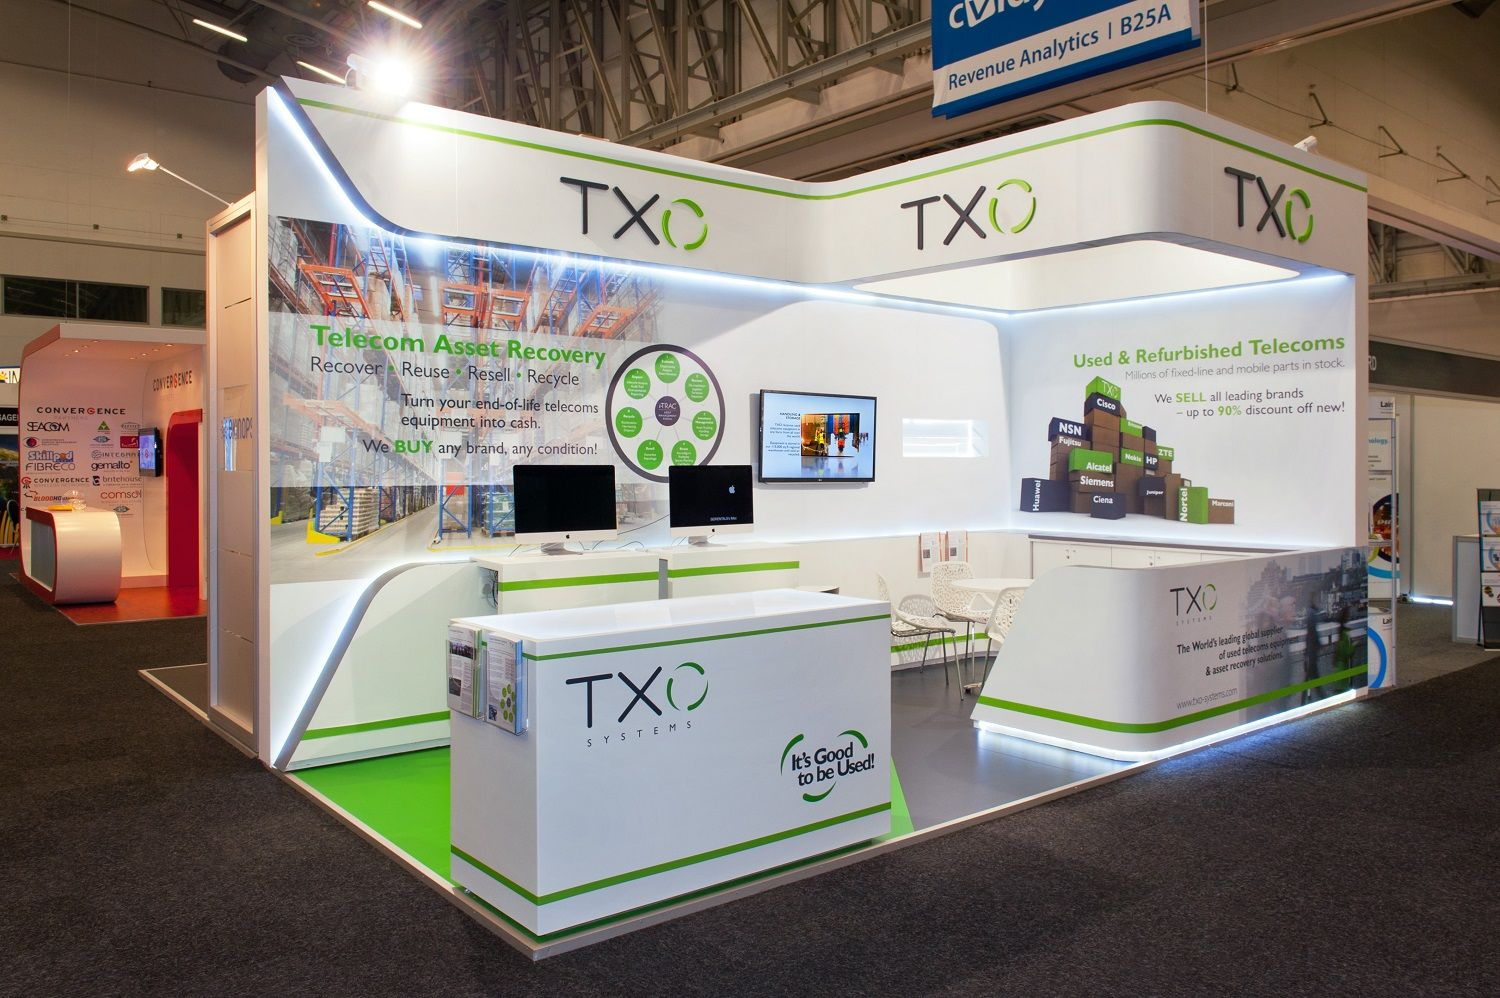 Marketing Exhibition Stand Xo : Hott dimensional marketing